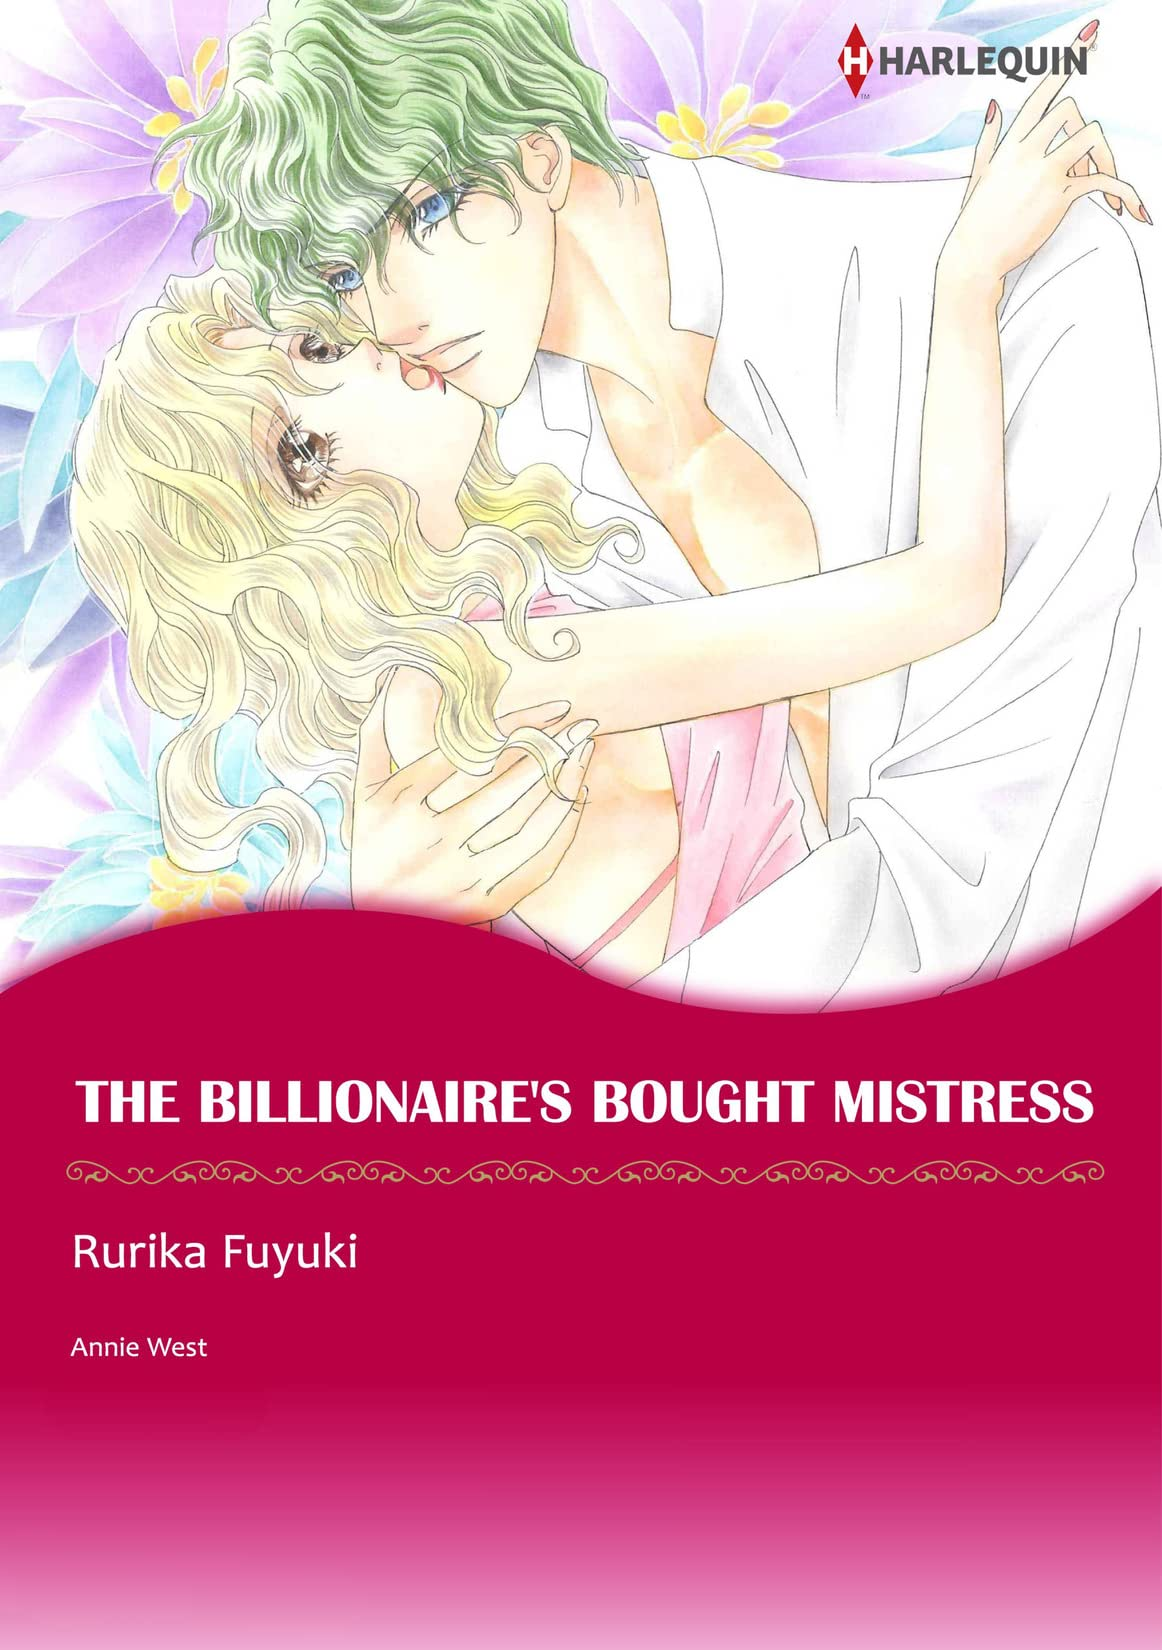 The Billionaire's Bought Mistress